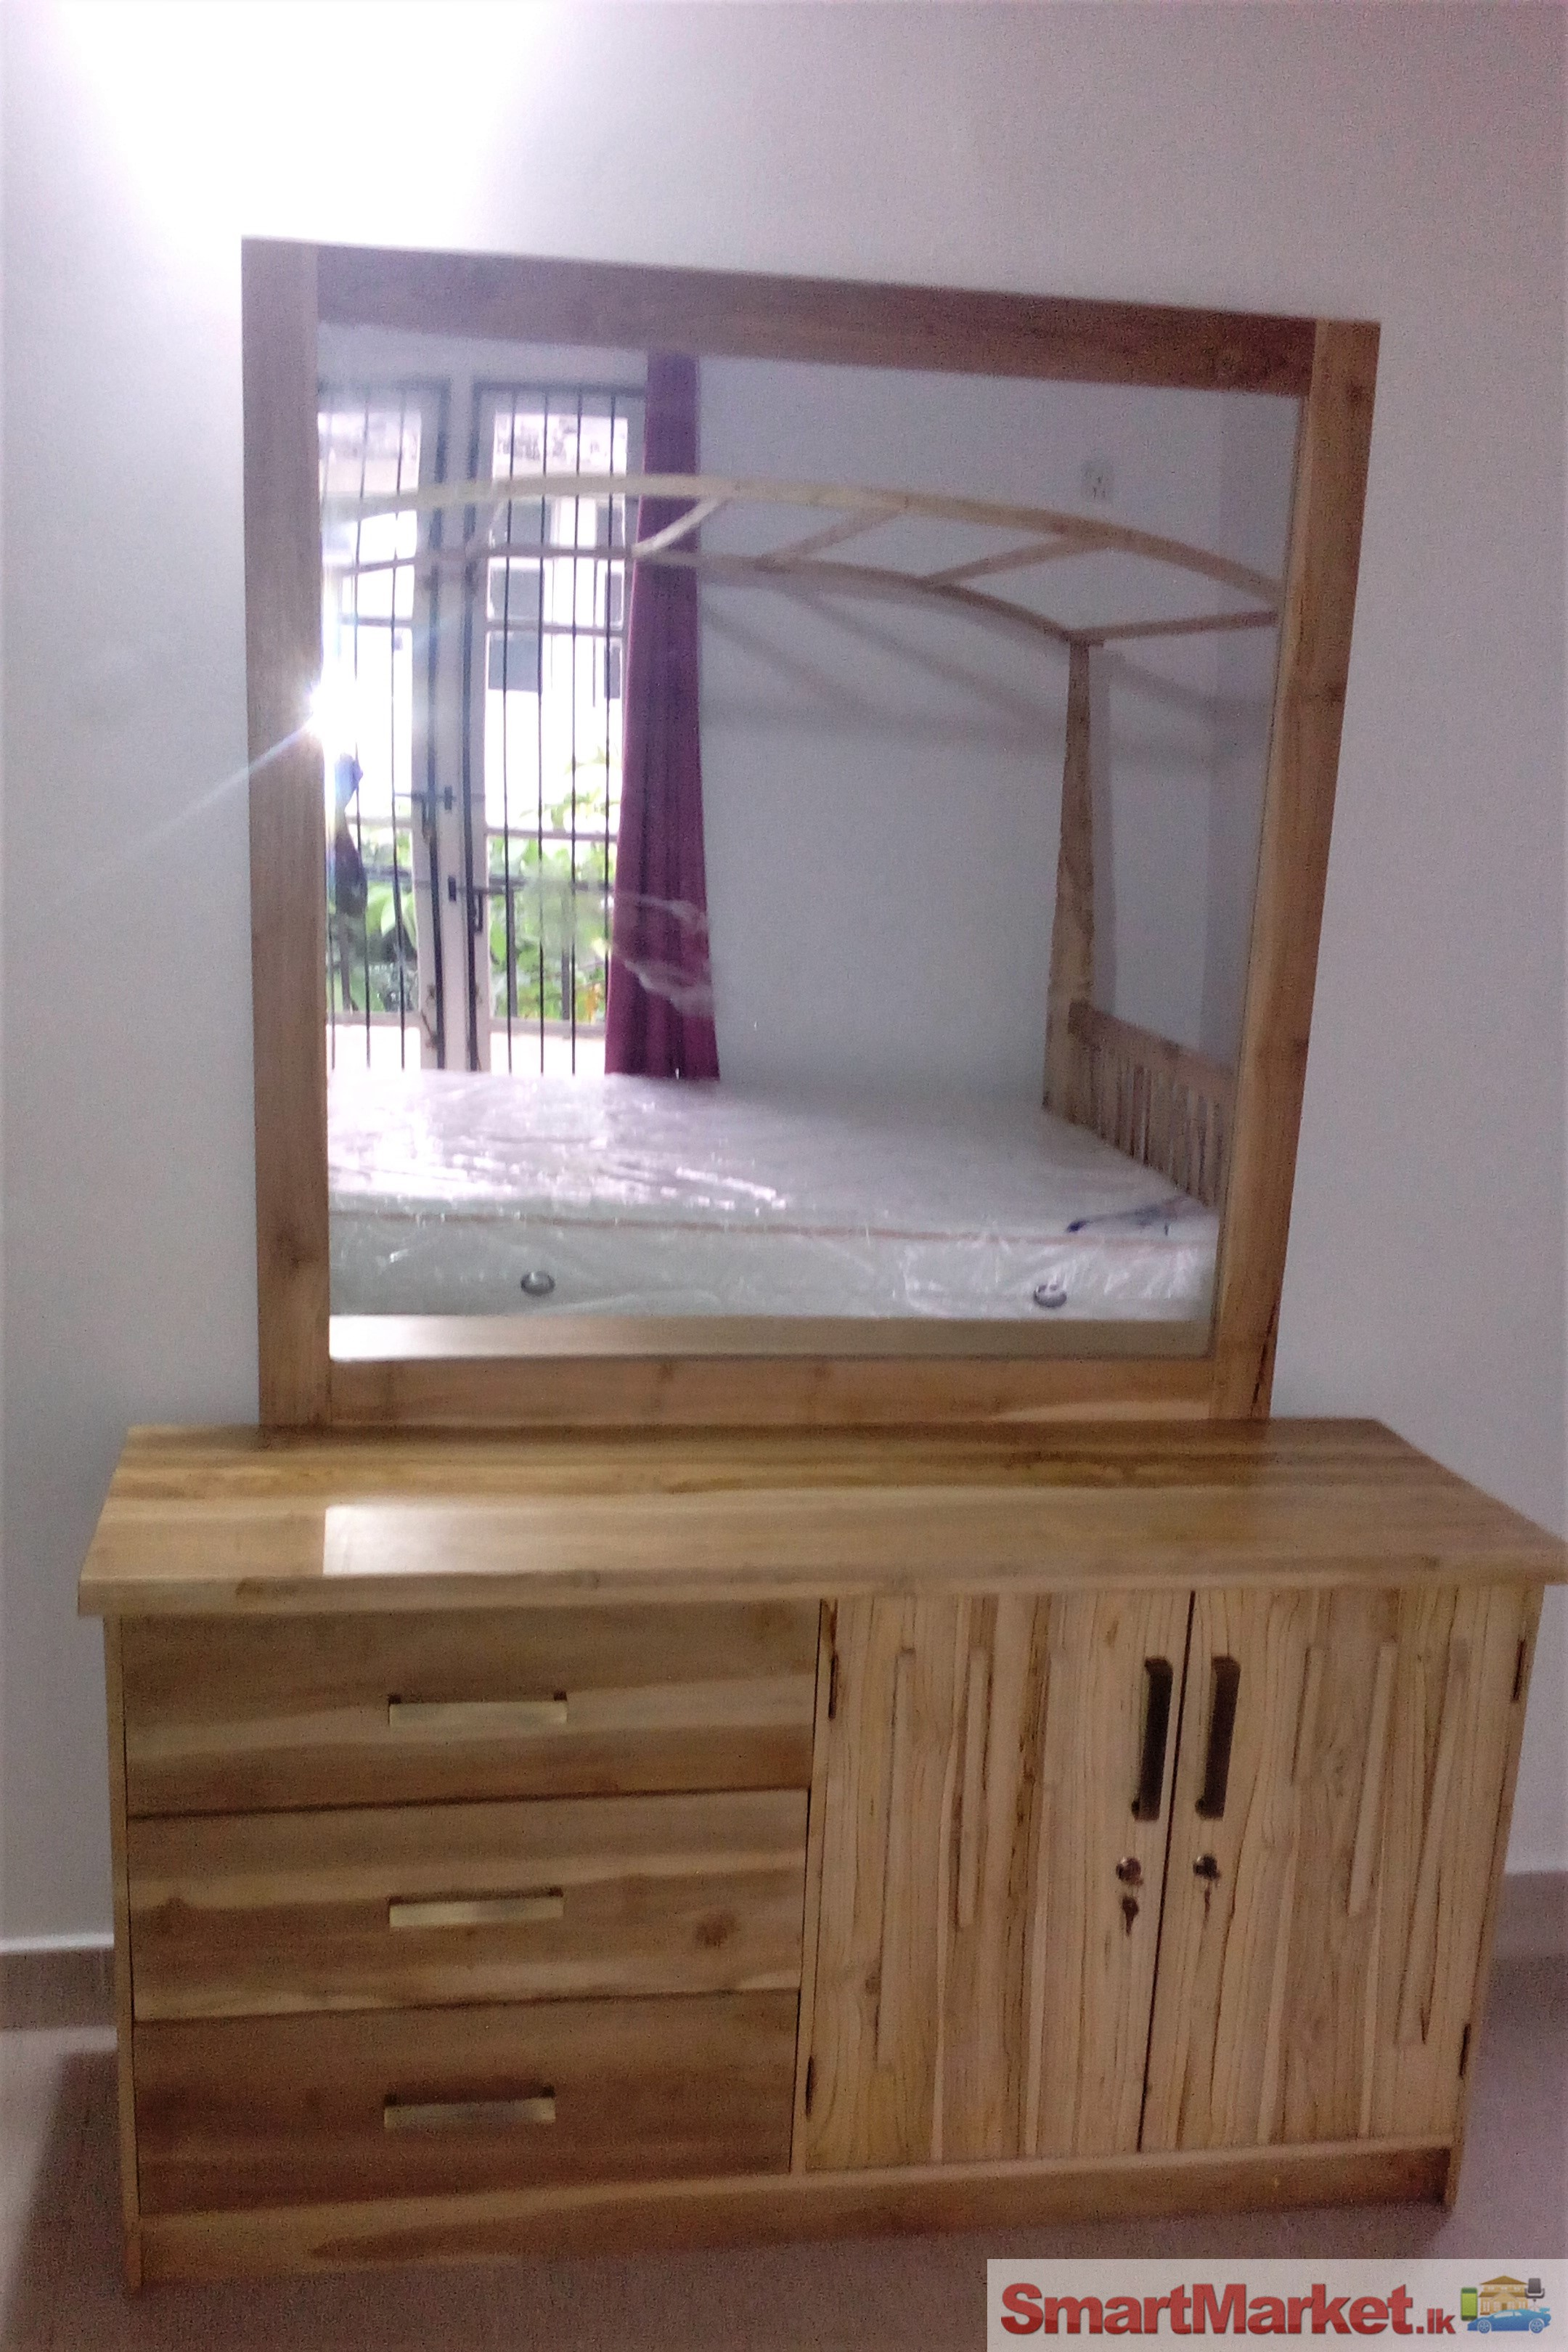 For exquisitely designed quality furniture at affordable for Cheap and good quality furniture